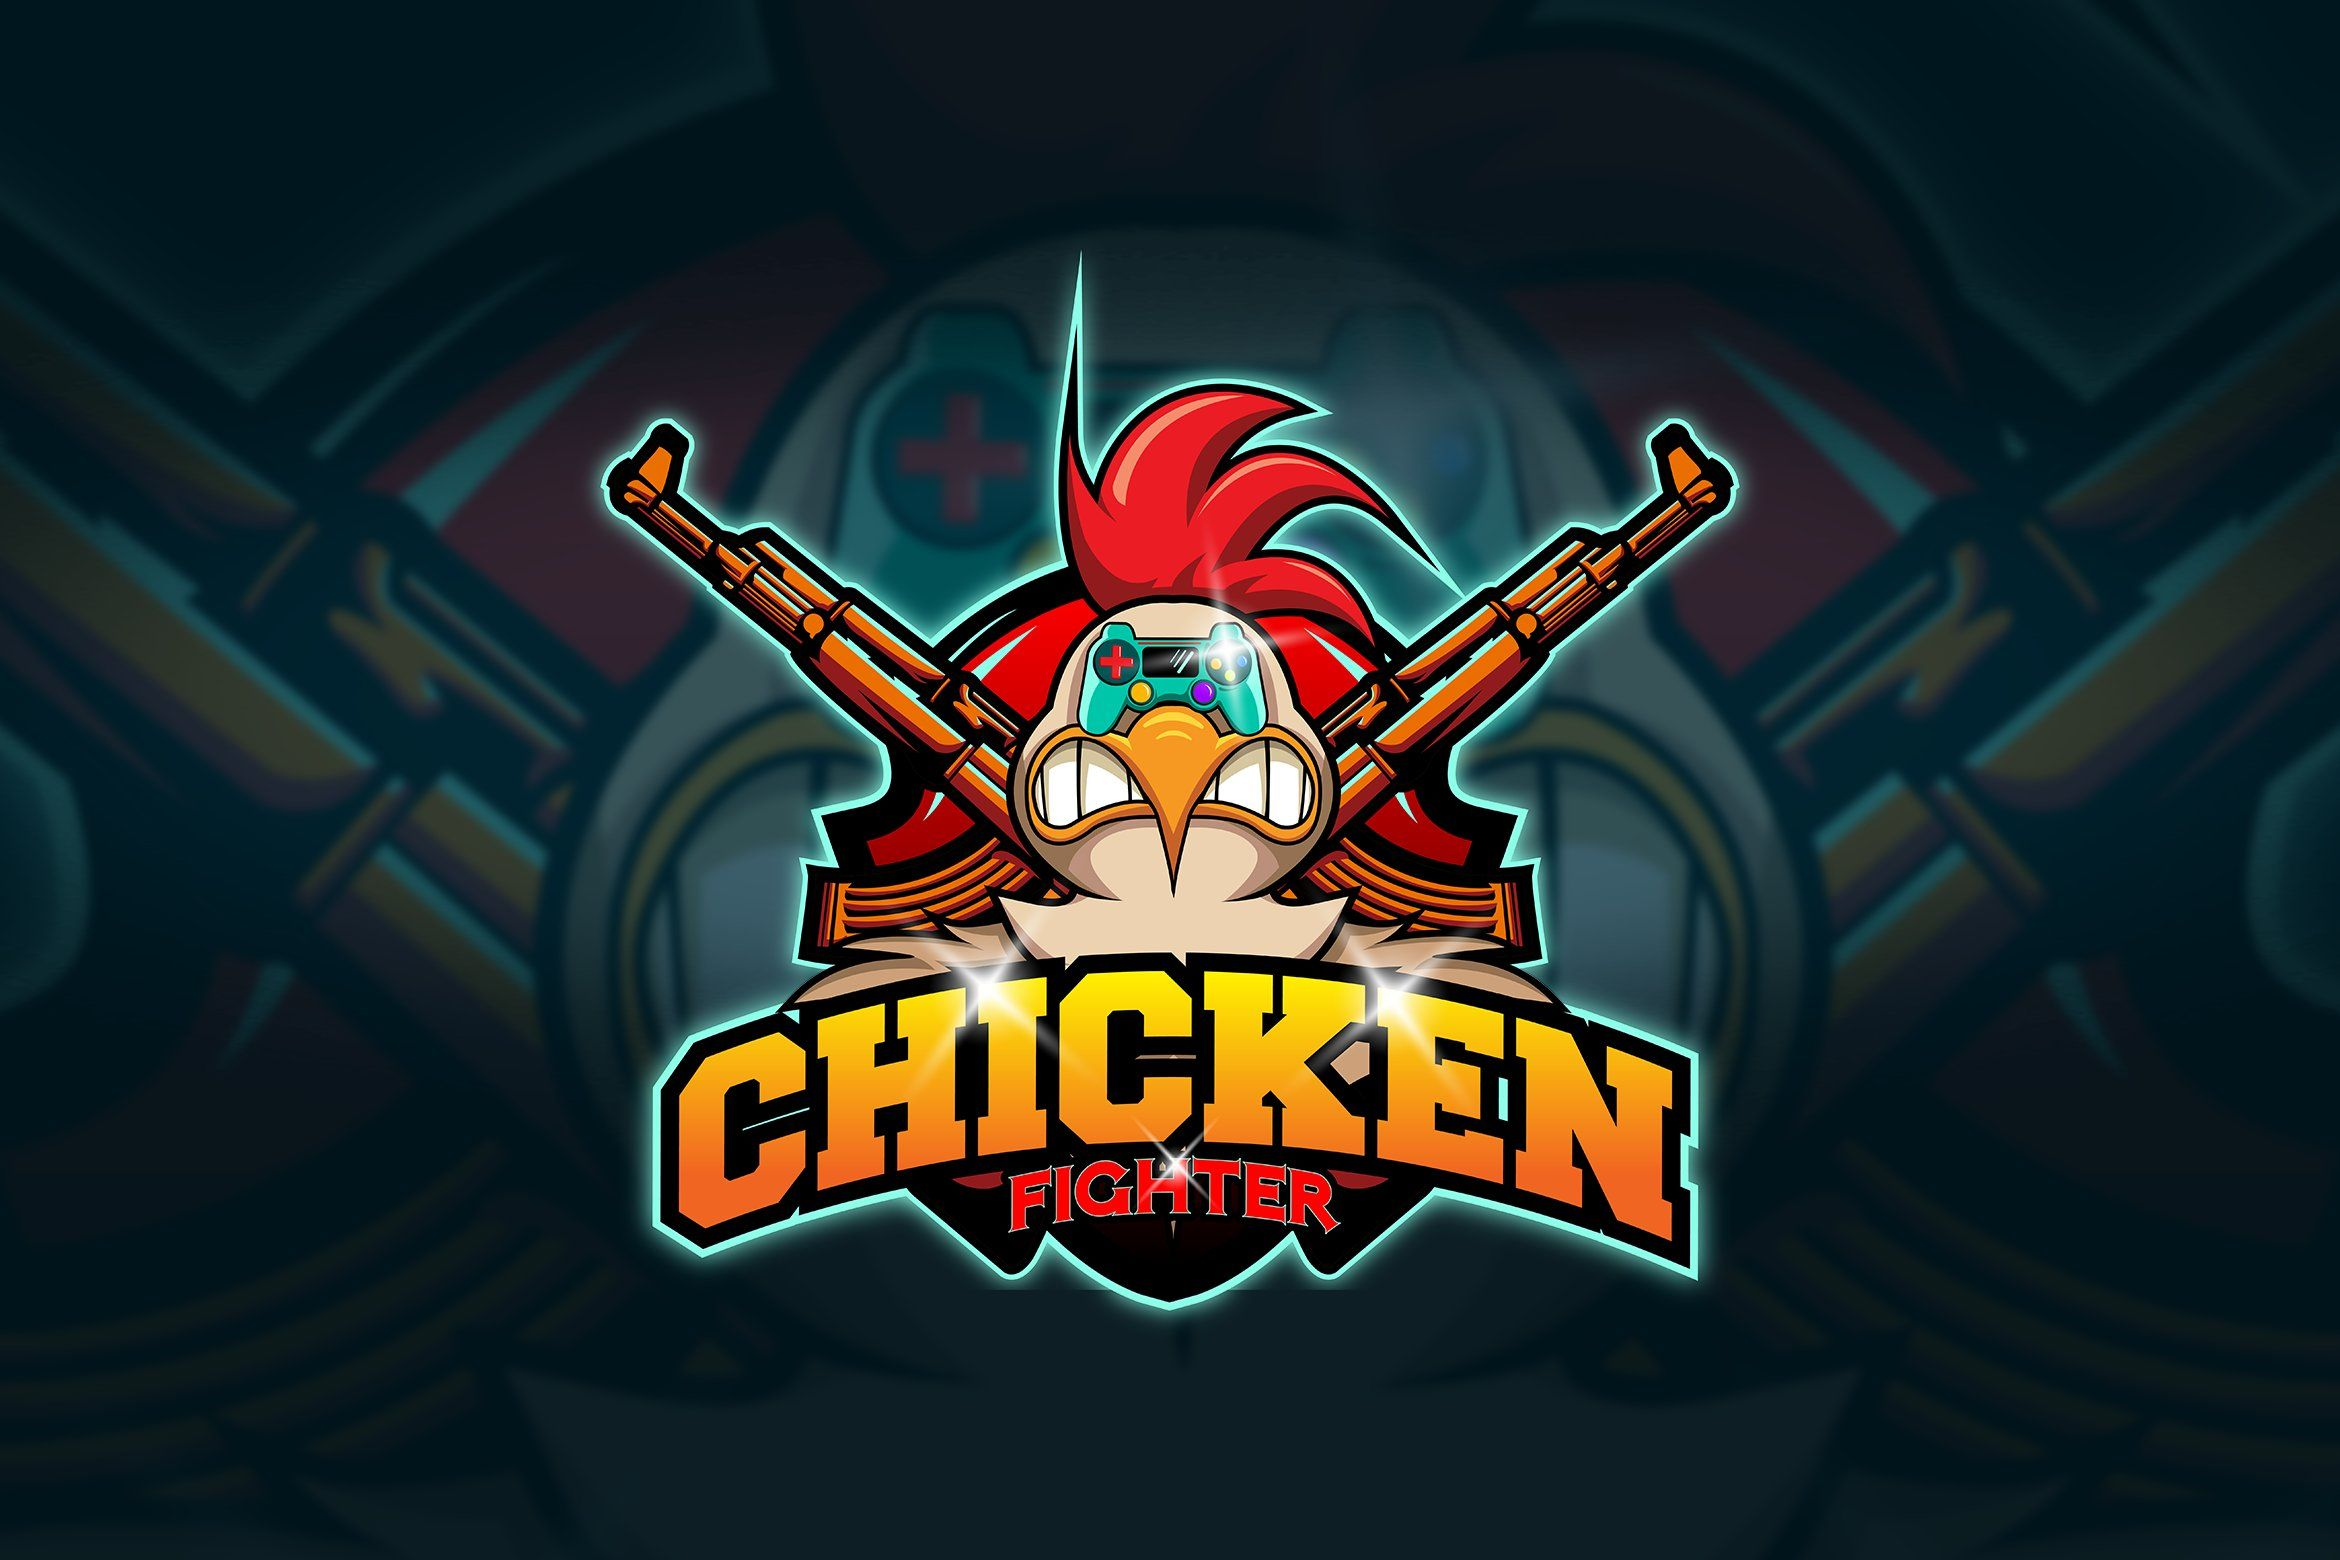 Chicken Mascot Esport Logo In 2020 Logos Mascot Chicken Logo